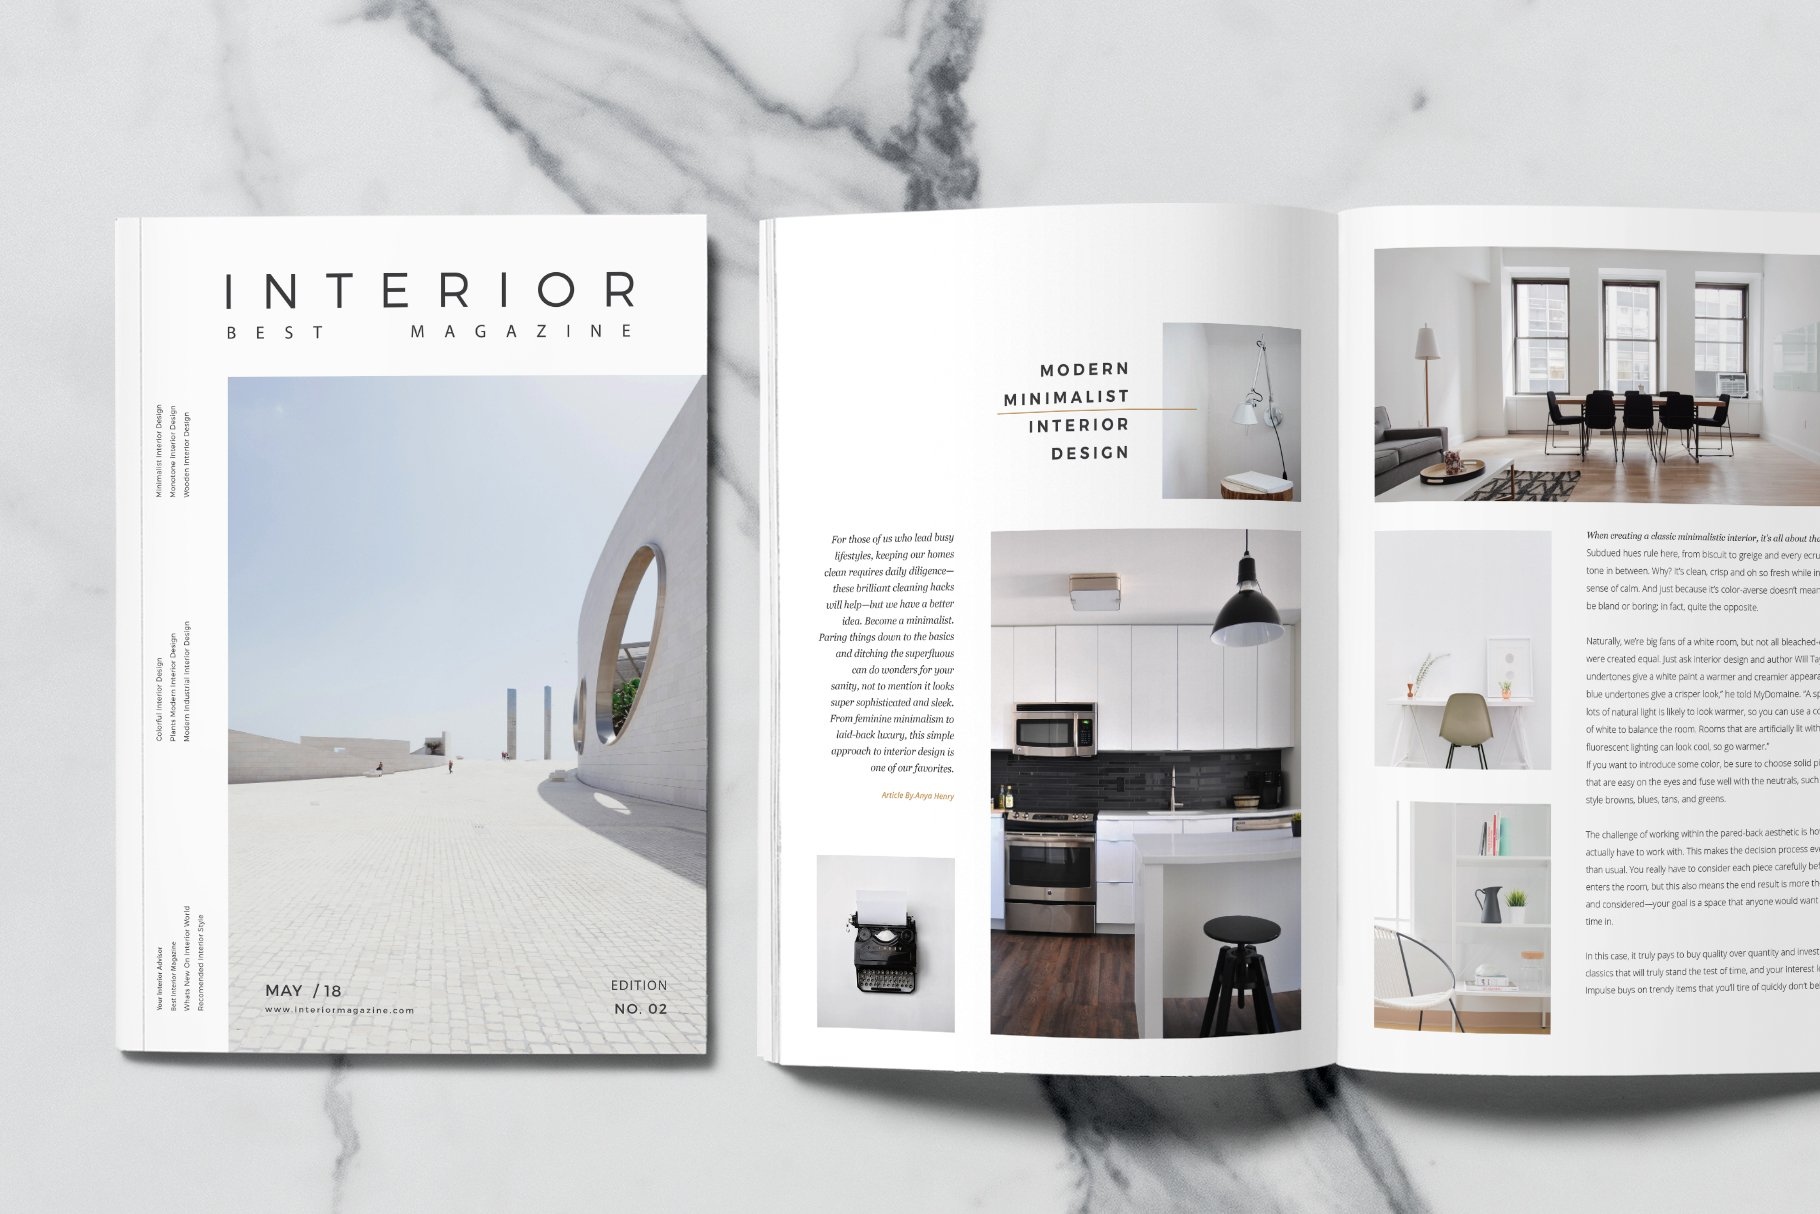 Western Interior Design Magazine